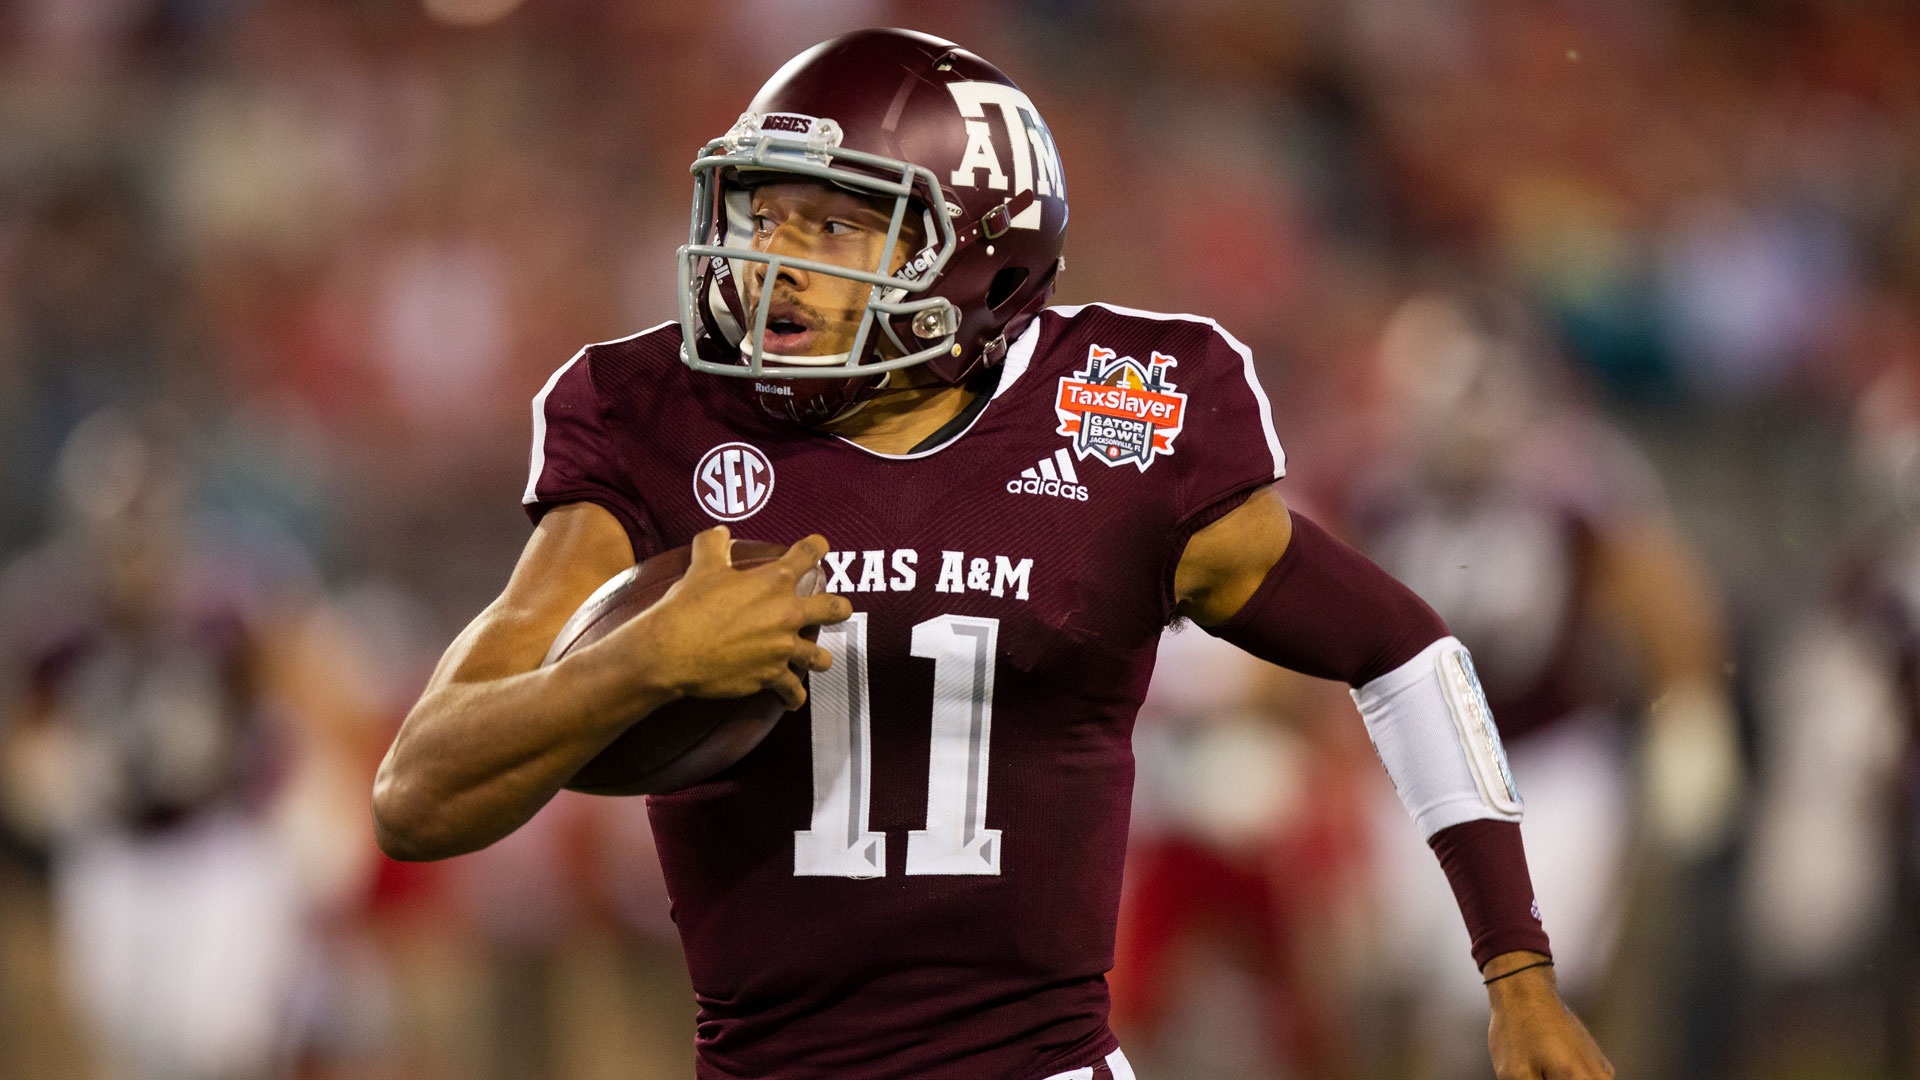 Texas A&M Preview 2019